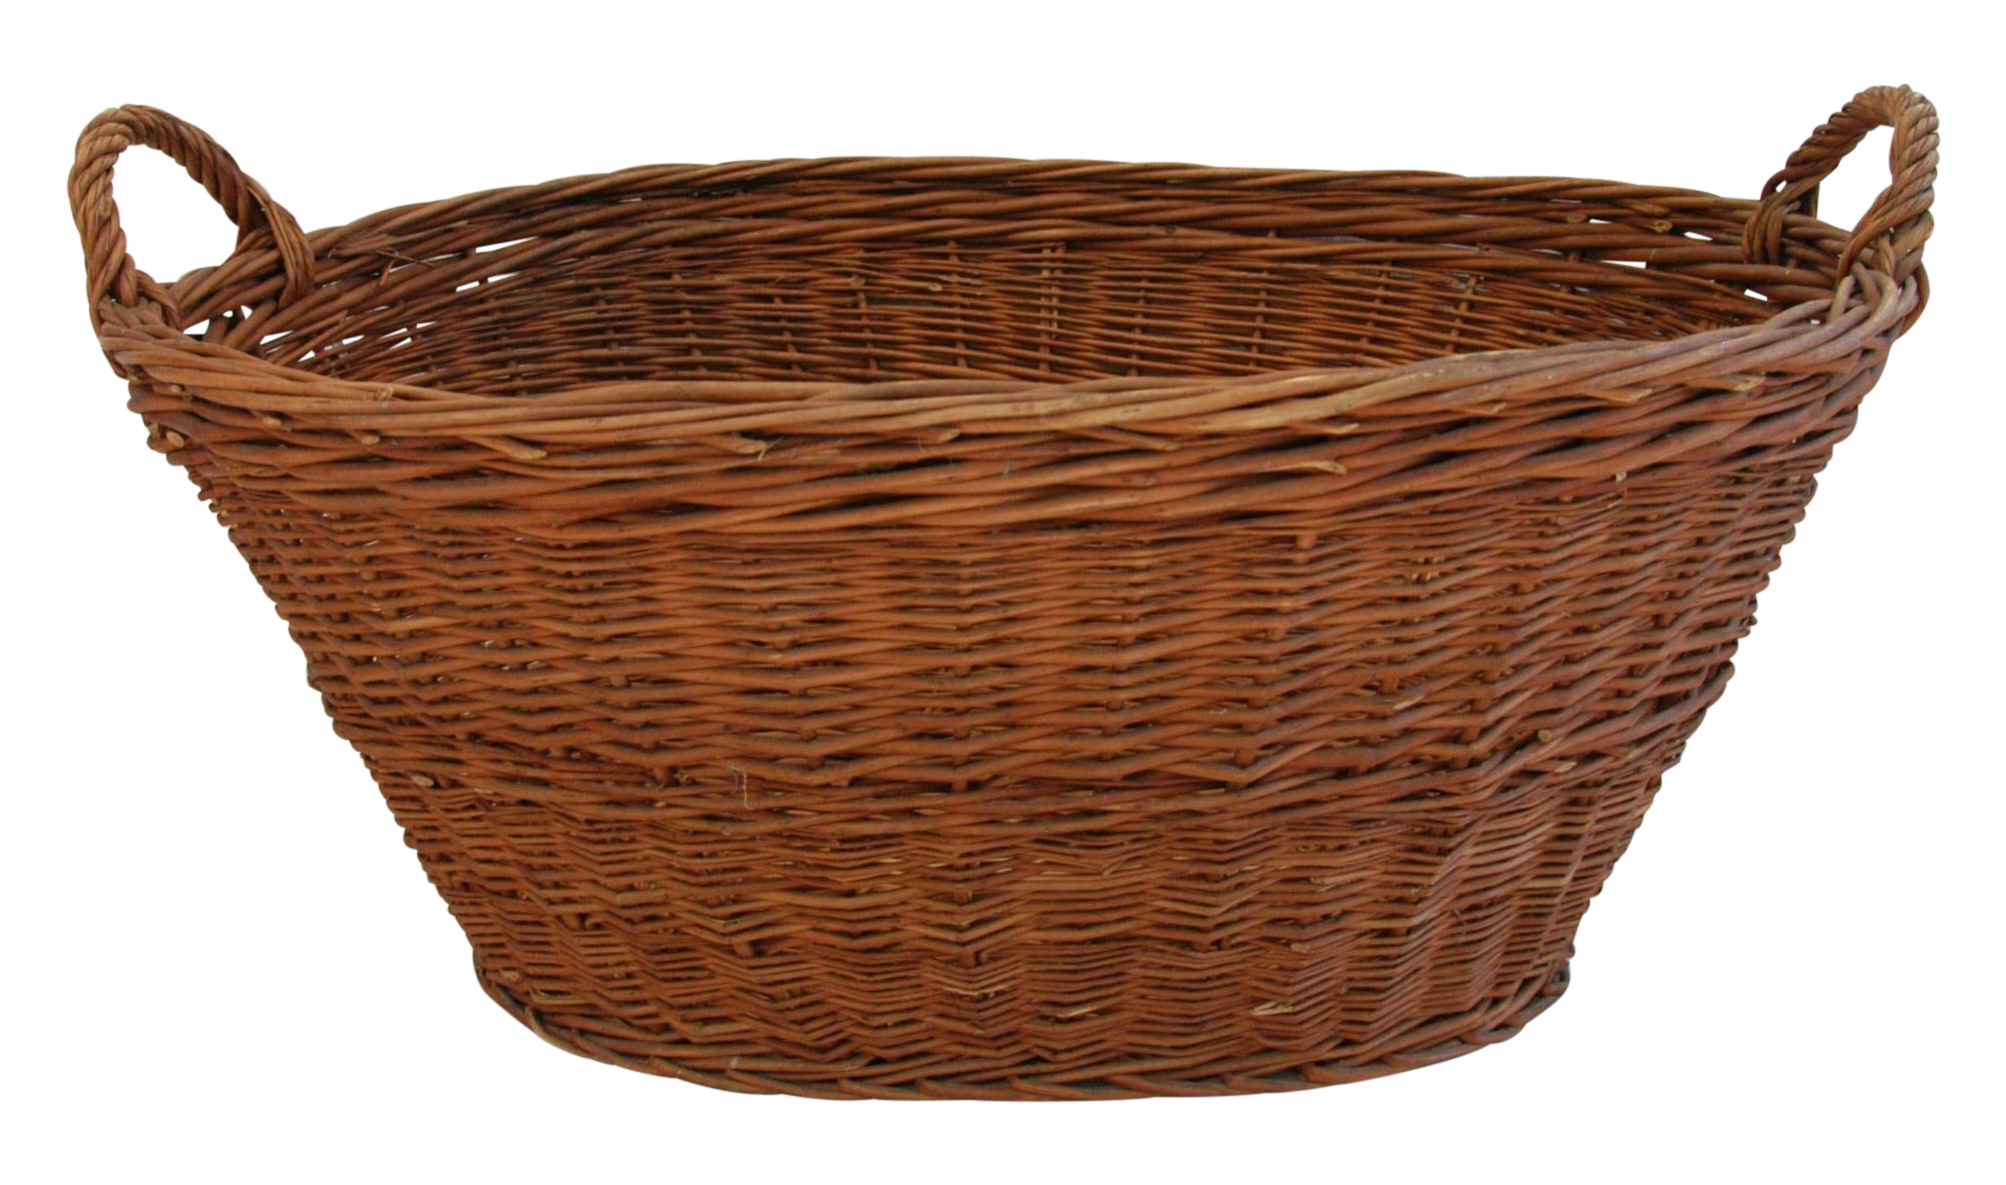 Wicker Basket Png Hdpng.com 2006 - Wicker Basket, Transparent background PNG HD thumbnail